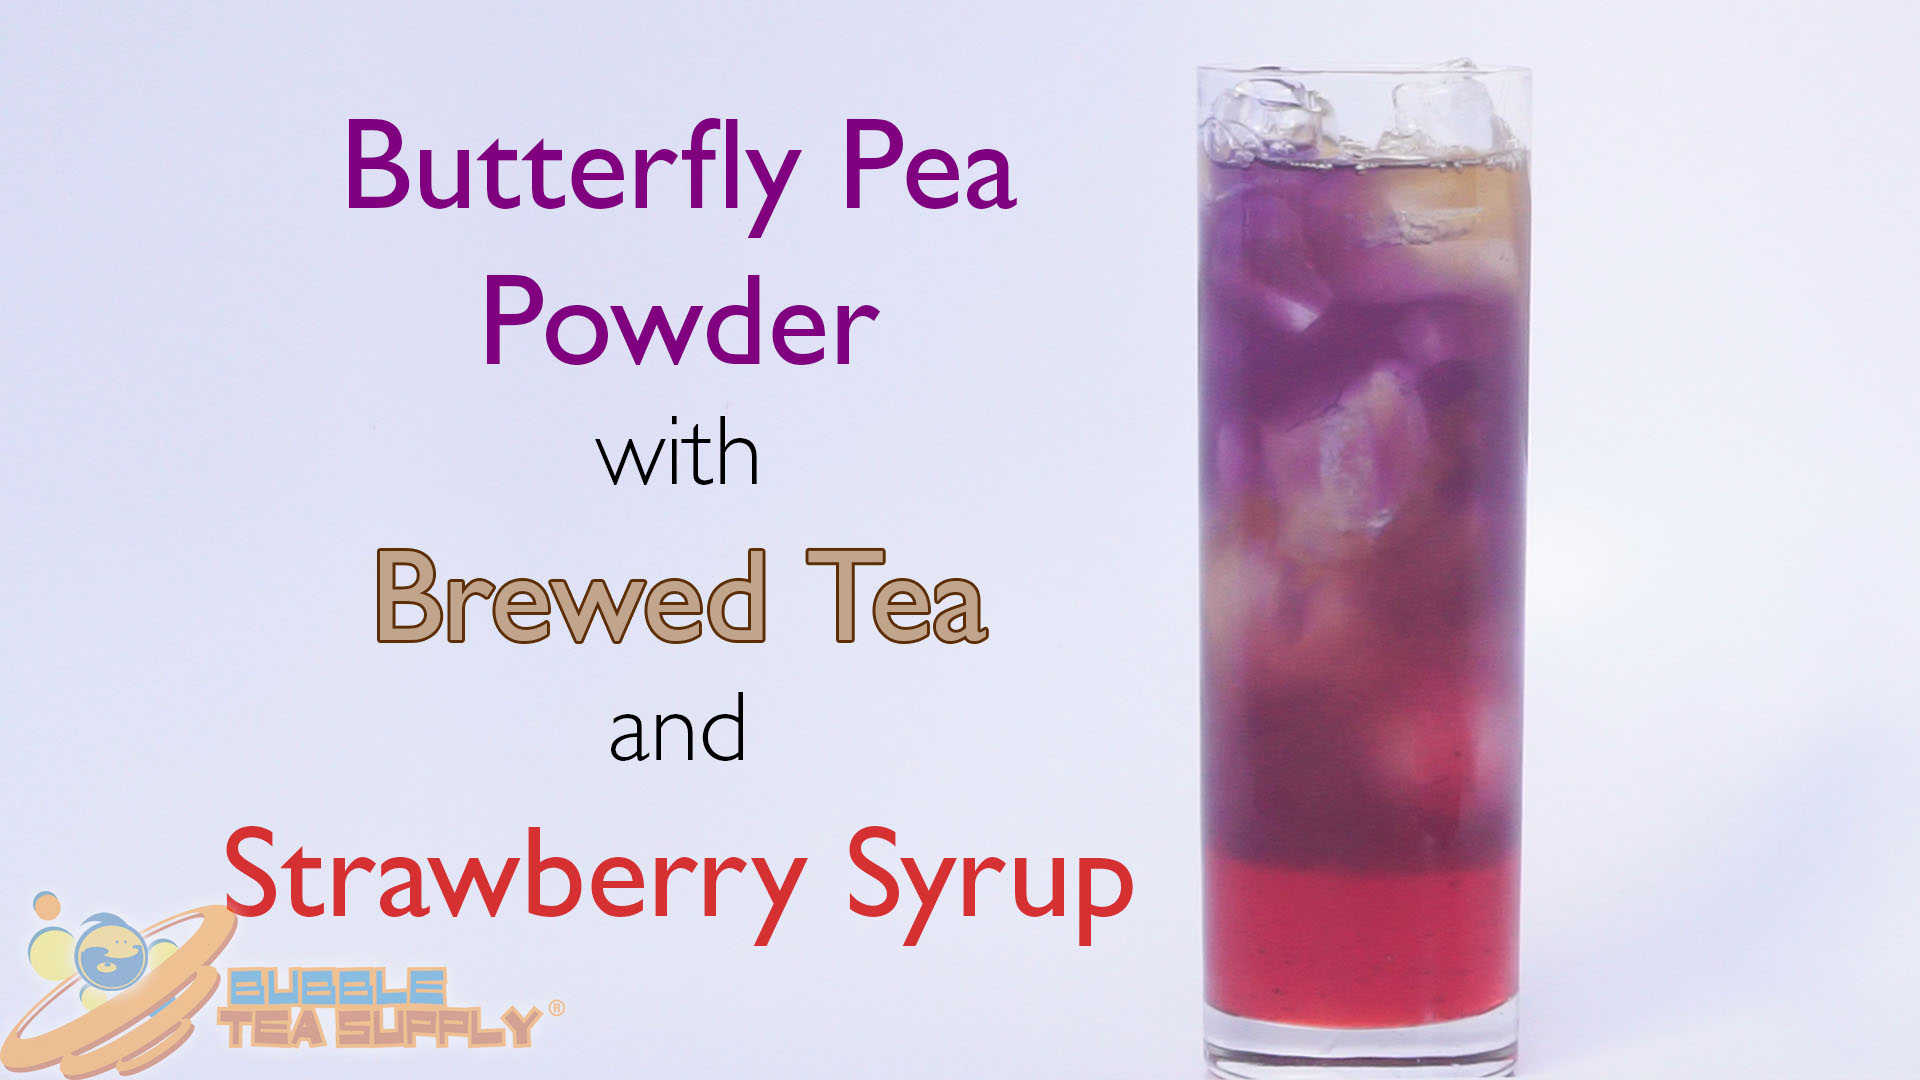 How to Make a Butterfly Pea with Brewed Tea and Strawberry Syrup Drink